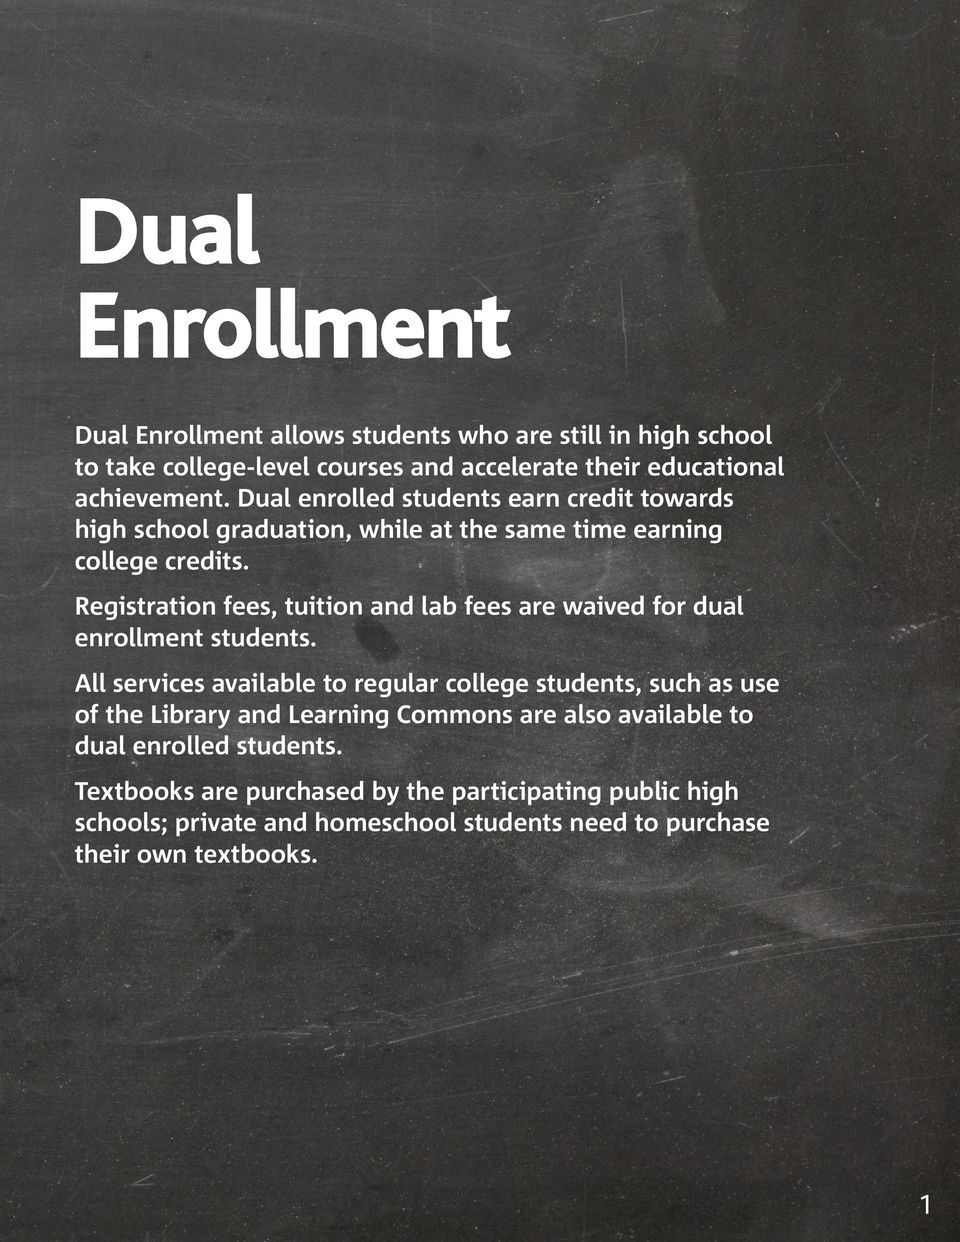 Registration fees, tuition and lab fees are waived for dual enrollment students.